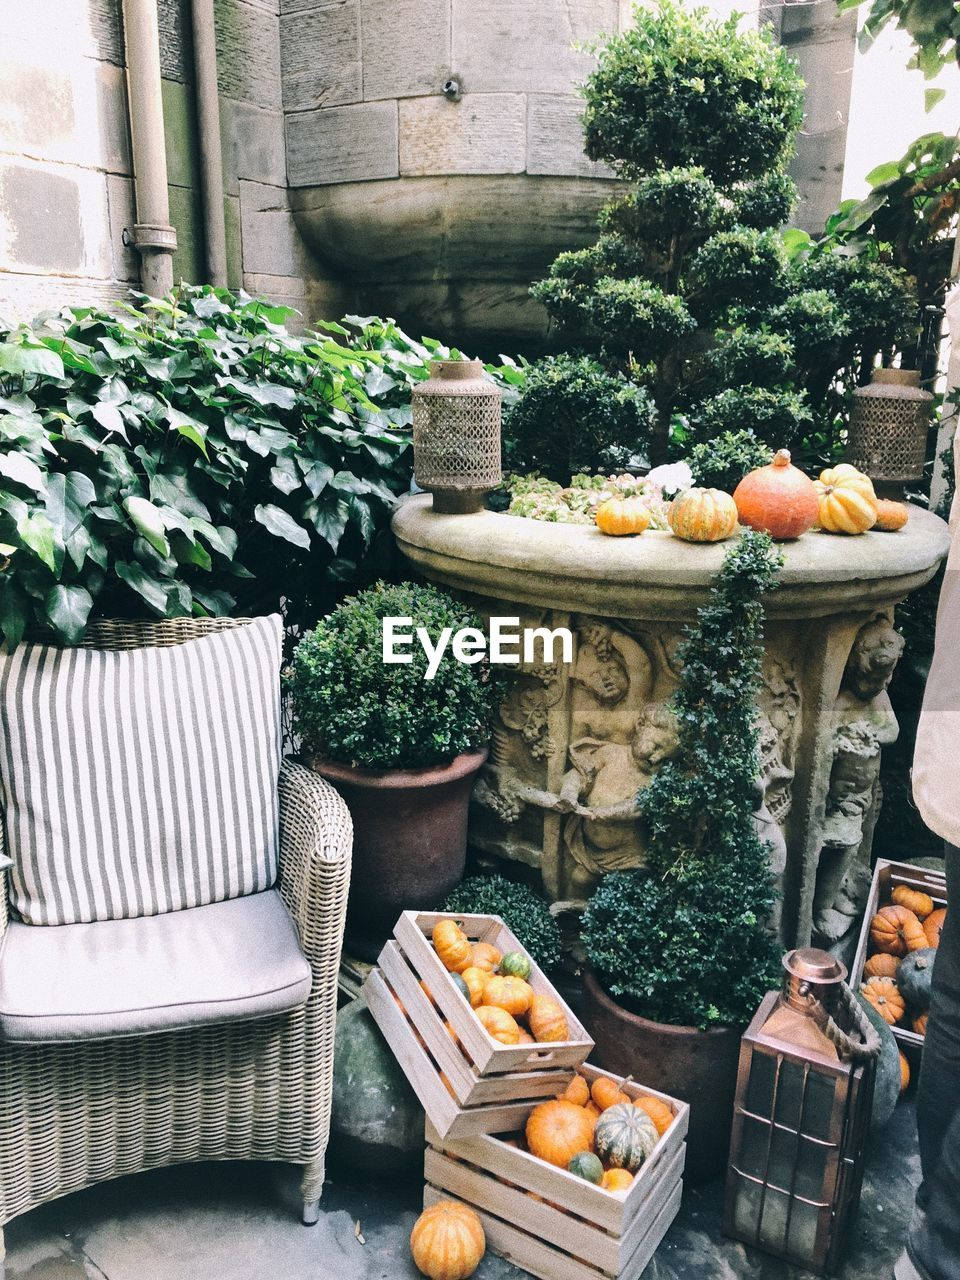 High angle view of pumpkins in crates by potted plants